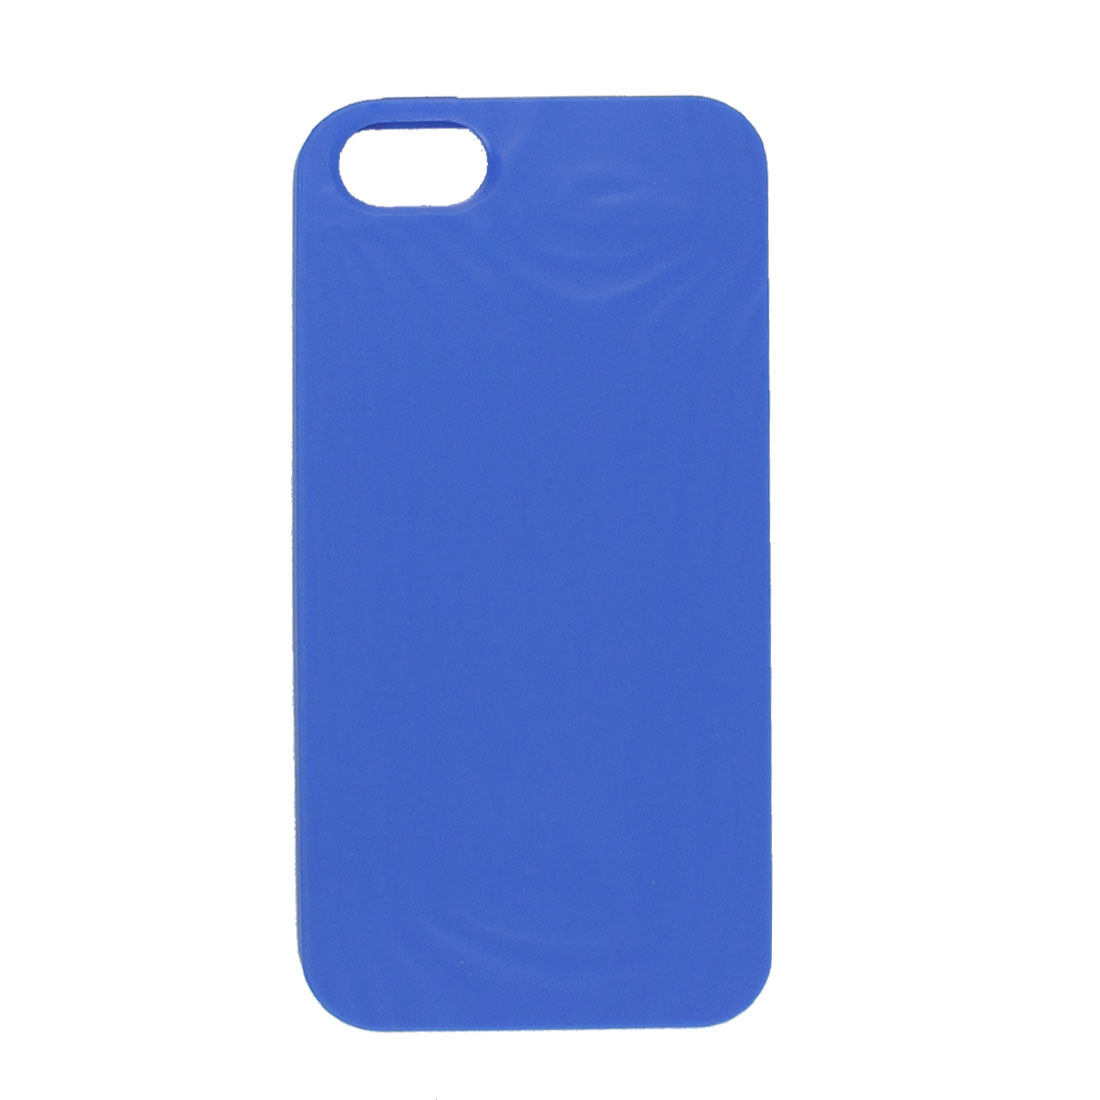 Blue Soft Plastic Embossed Protective Back Case Shell Housing for iPhone 5 5G